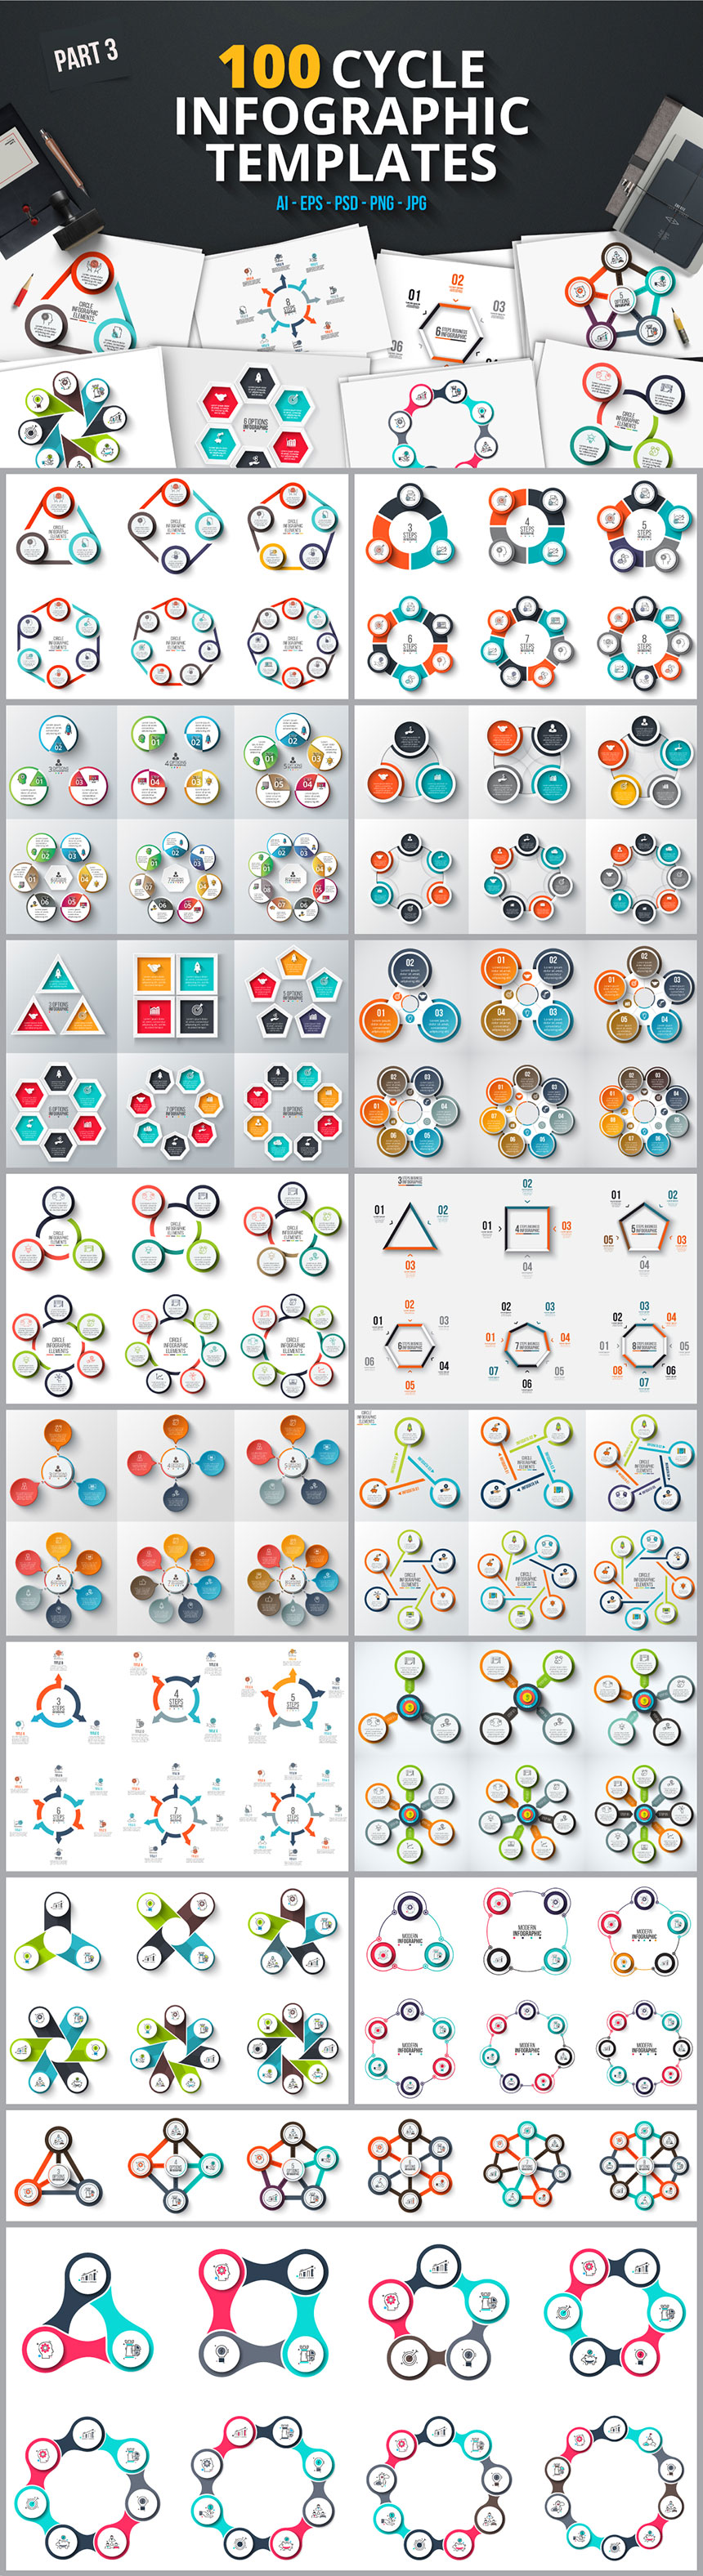 800 Infographic Templates for Illustrator and Photoshop – MyDesignDeals